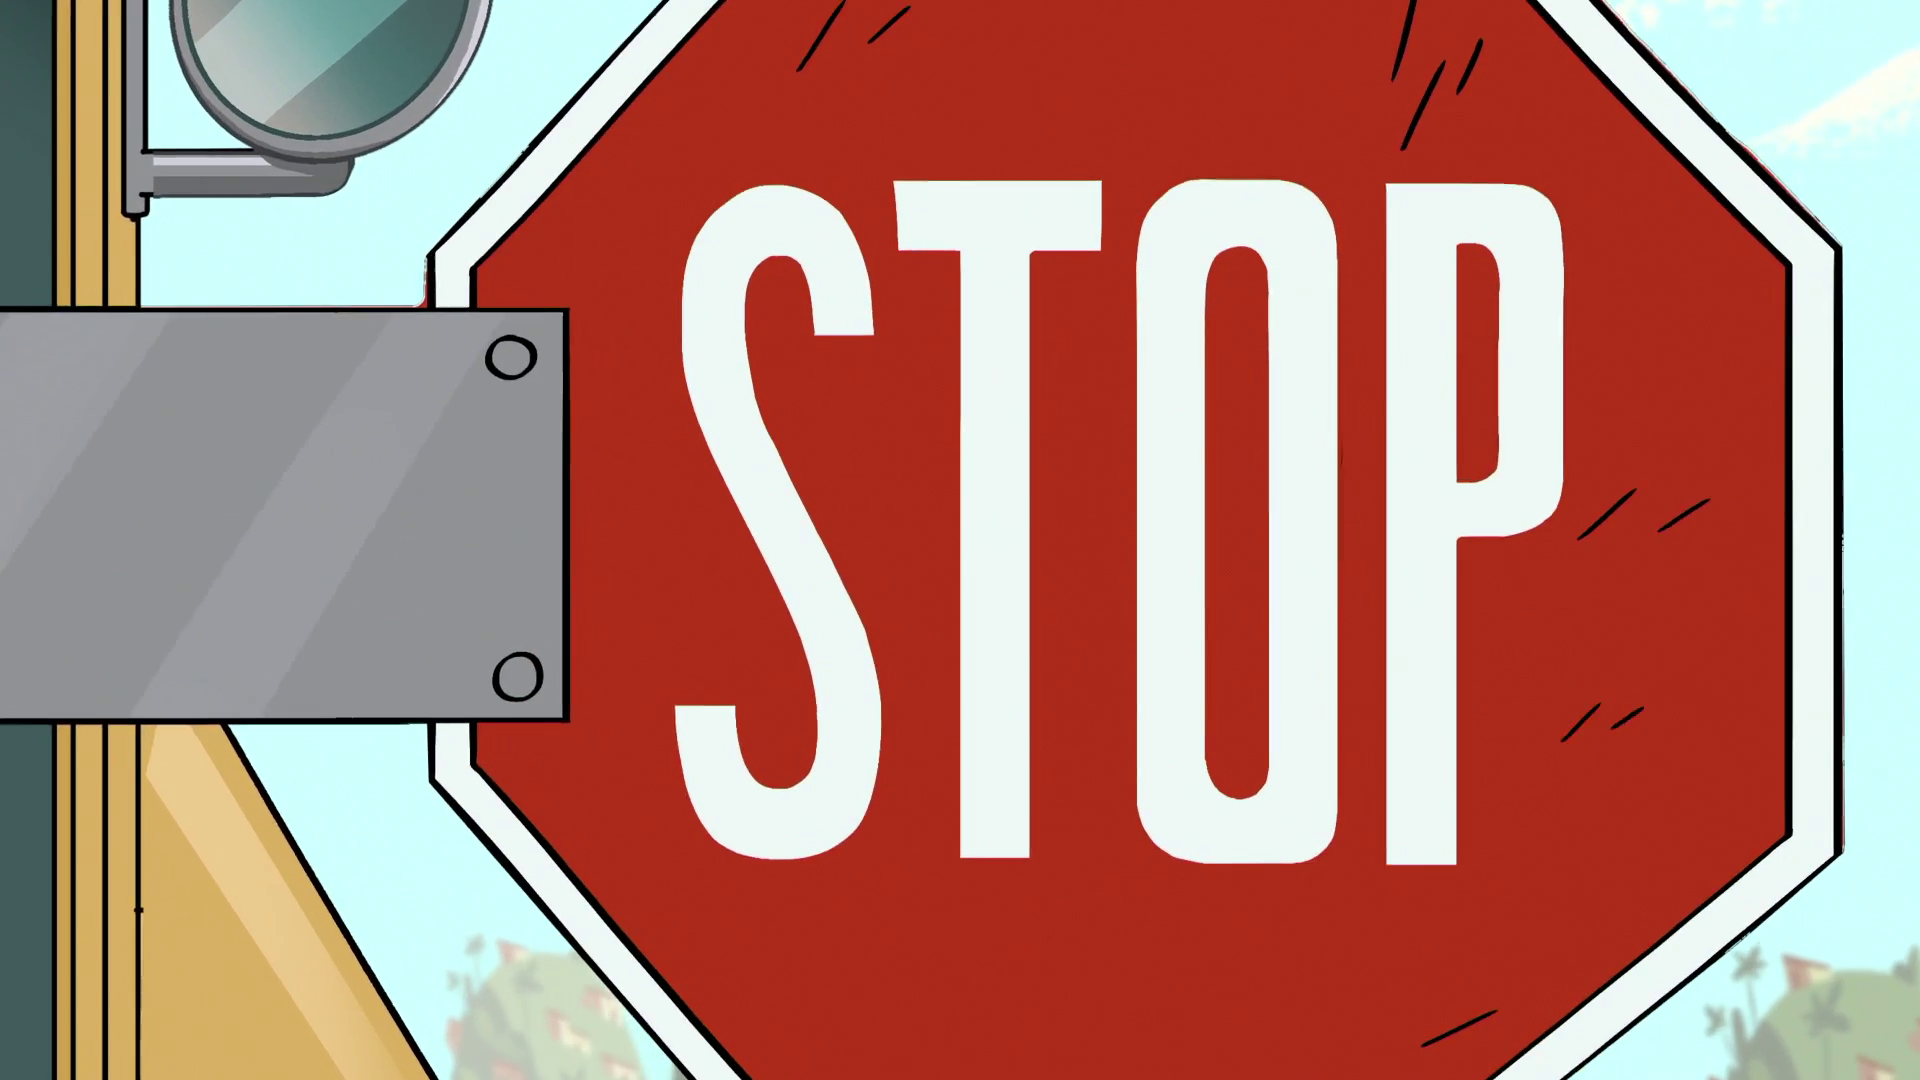 S1E7 School bus STOP sign.png - Stop PNG HD